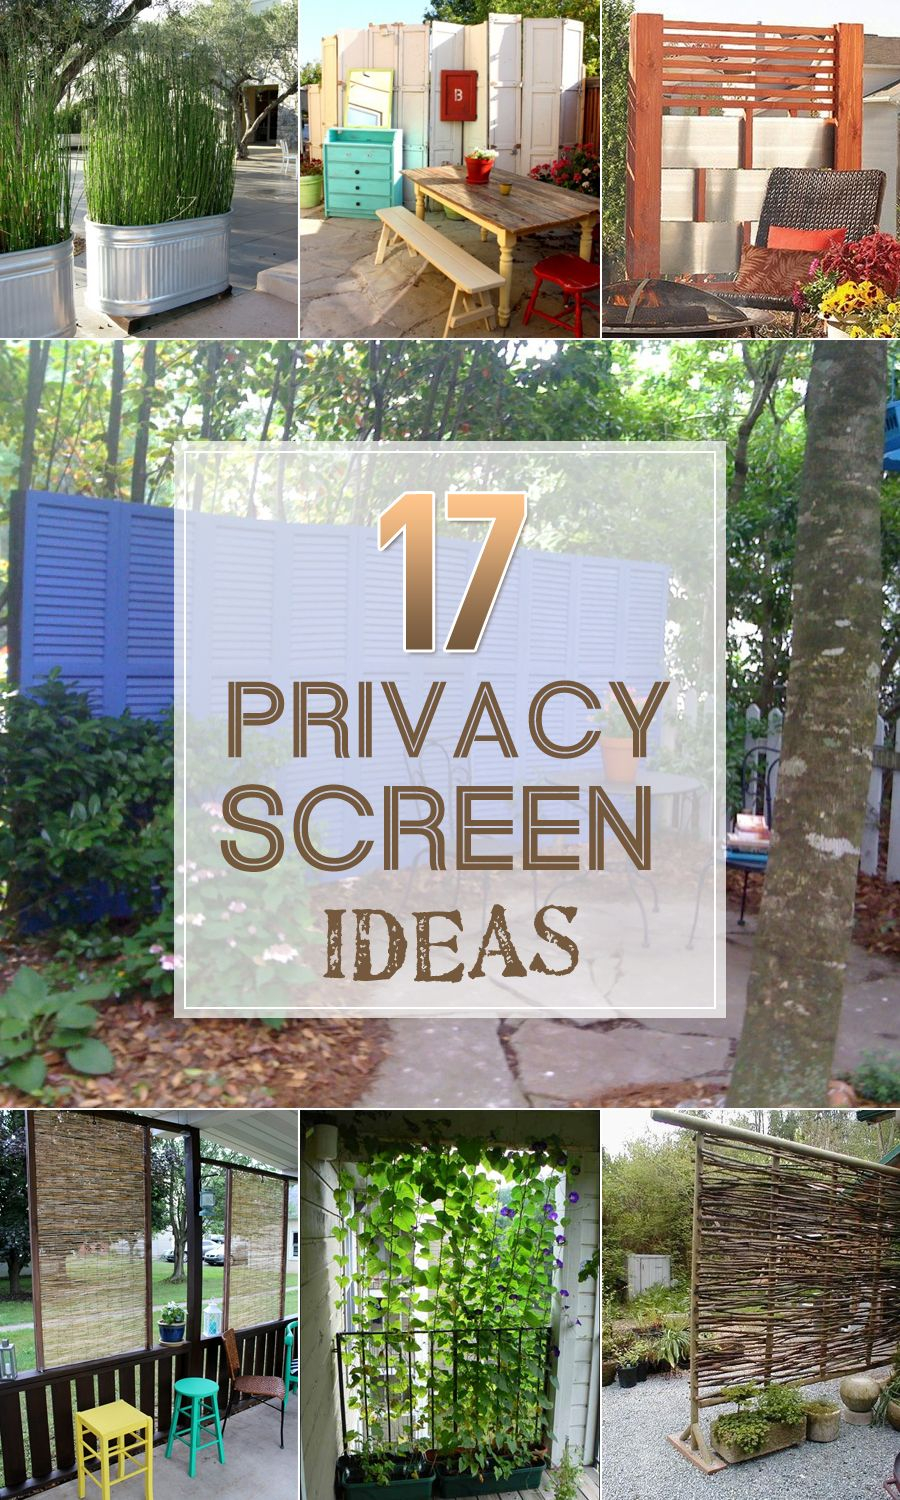 11.SIMPHOME.COM privacy screen ideas thatll keep your neighbors from snooping inside ideas to create privacy in backyard